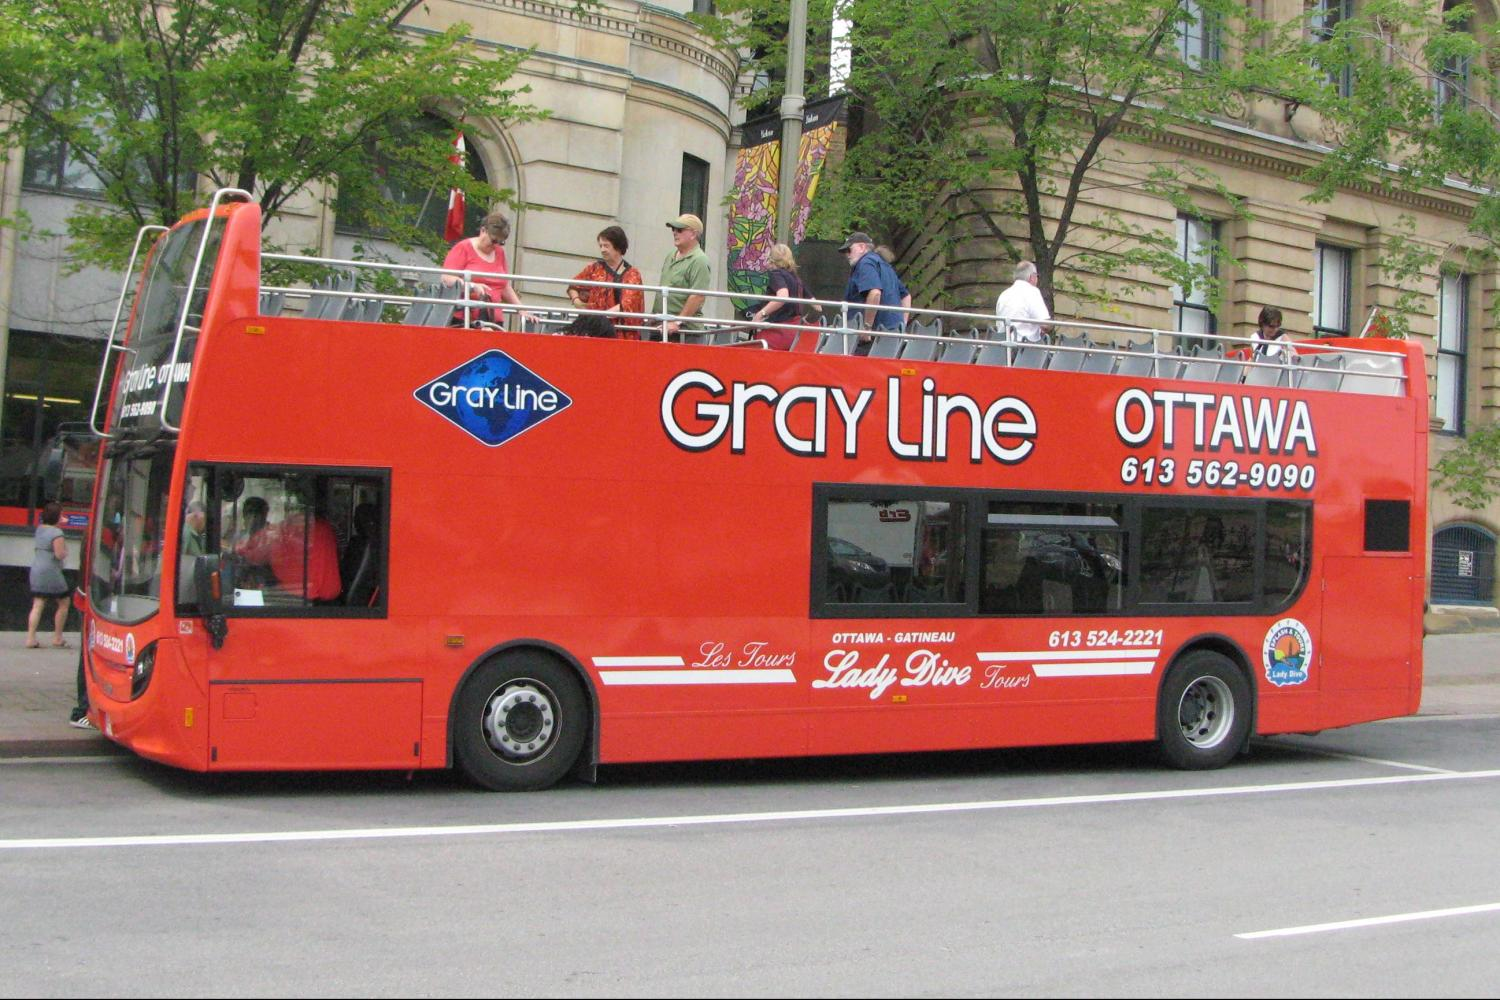 image of the Ottawa City Hop-on Hop-off Bus Tour one of the affordable bus tours in ottawa